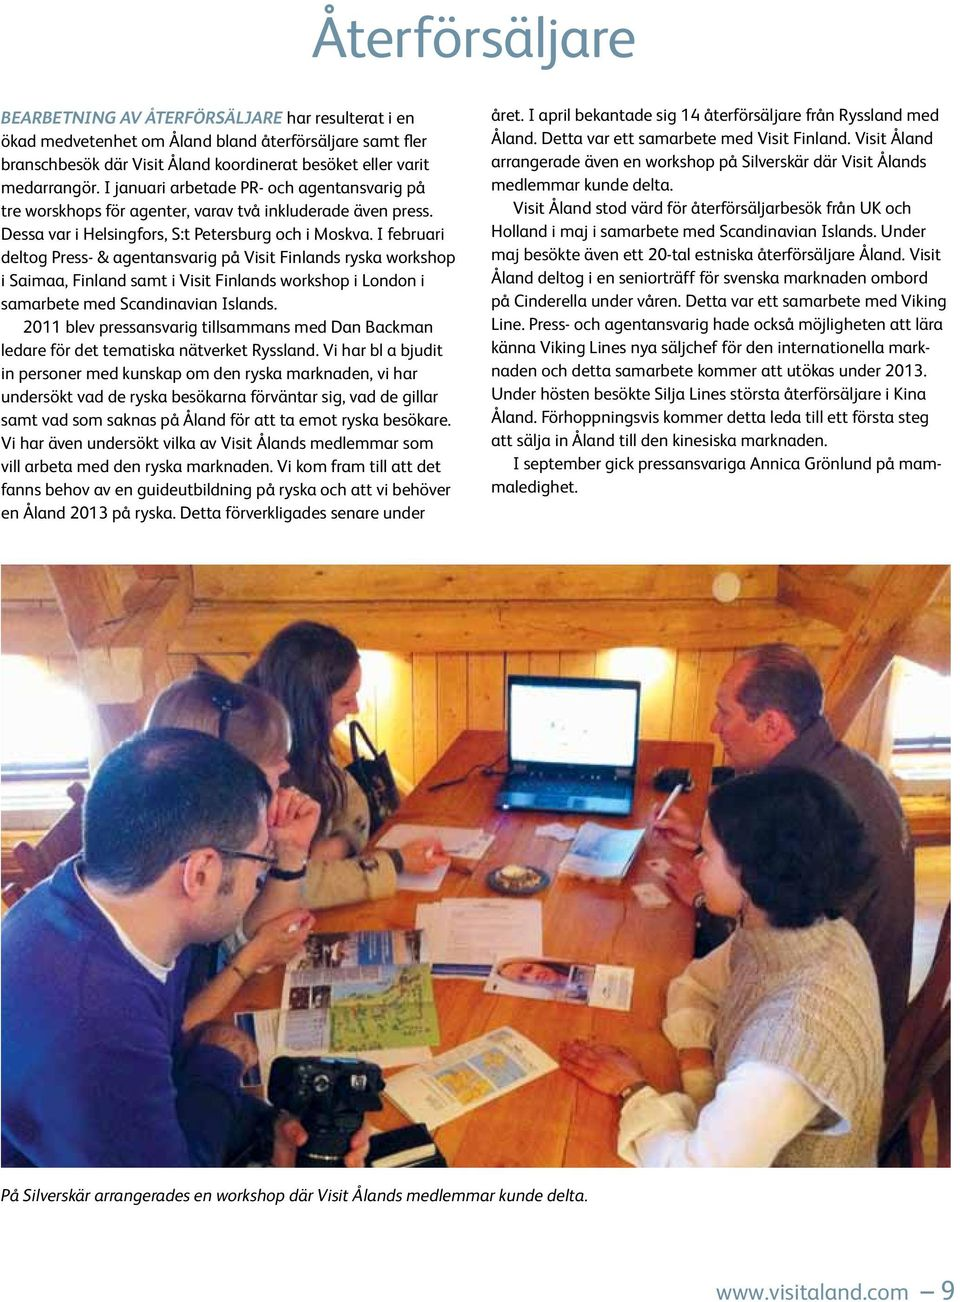 I februari deltog Press- & agentansvarig på Visit Finlands ryska workshop i Saimaa, Finland samt i Visit Finlands workshop i London i samarbete med Scandinavian Islands.